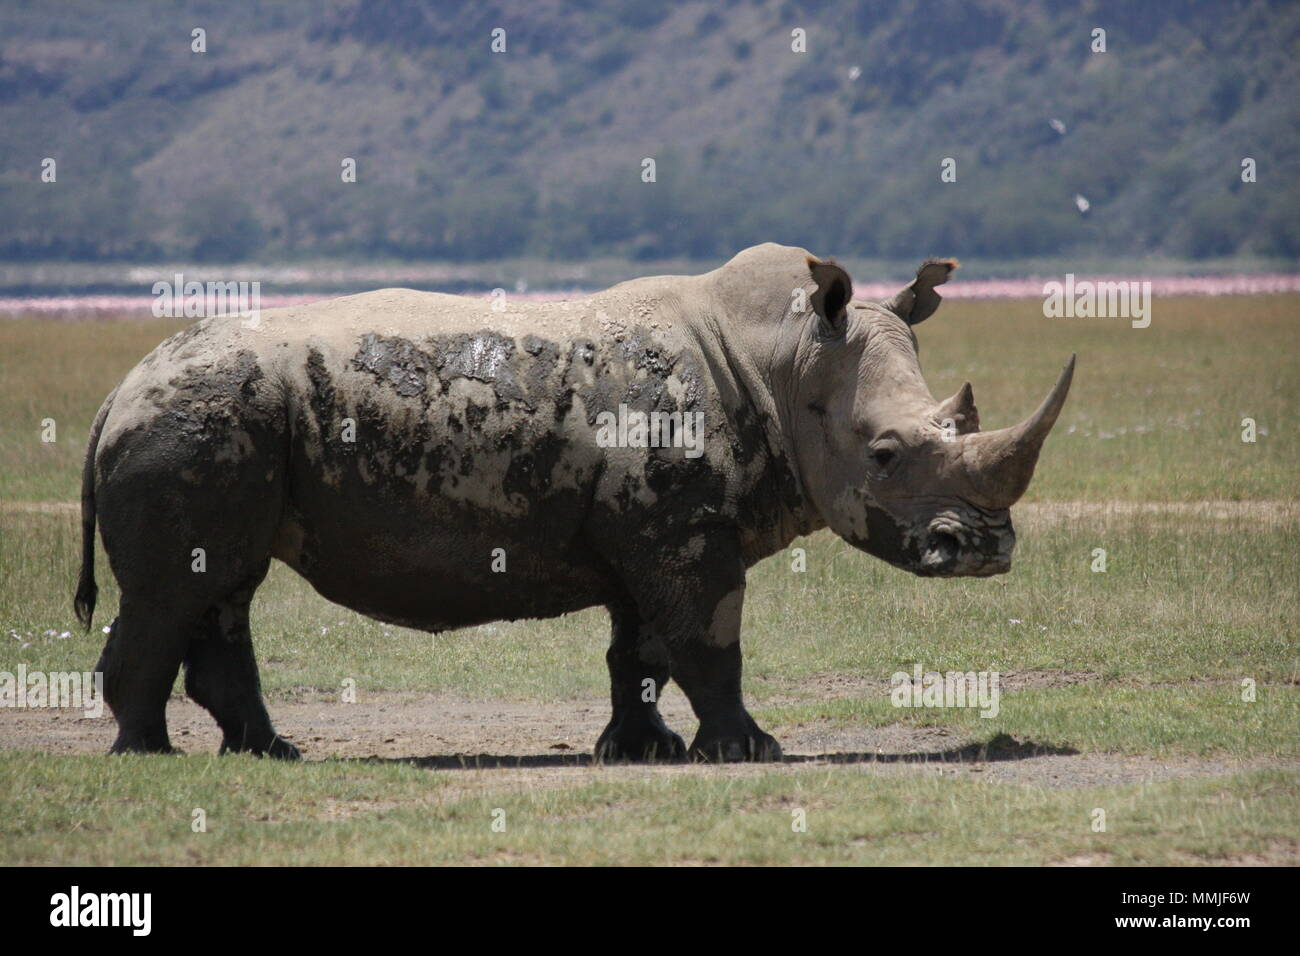 Rhino with cooling mud drying on his skin - Stock Image